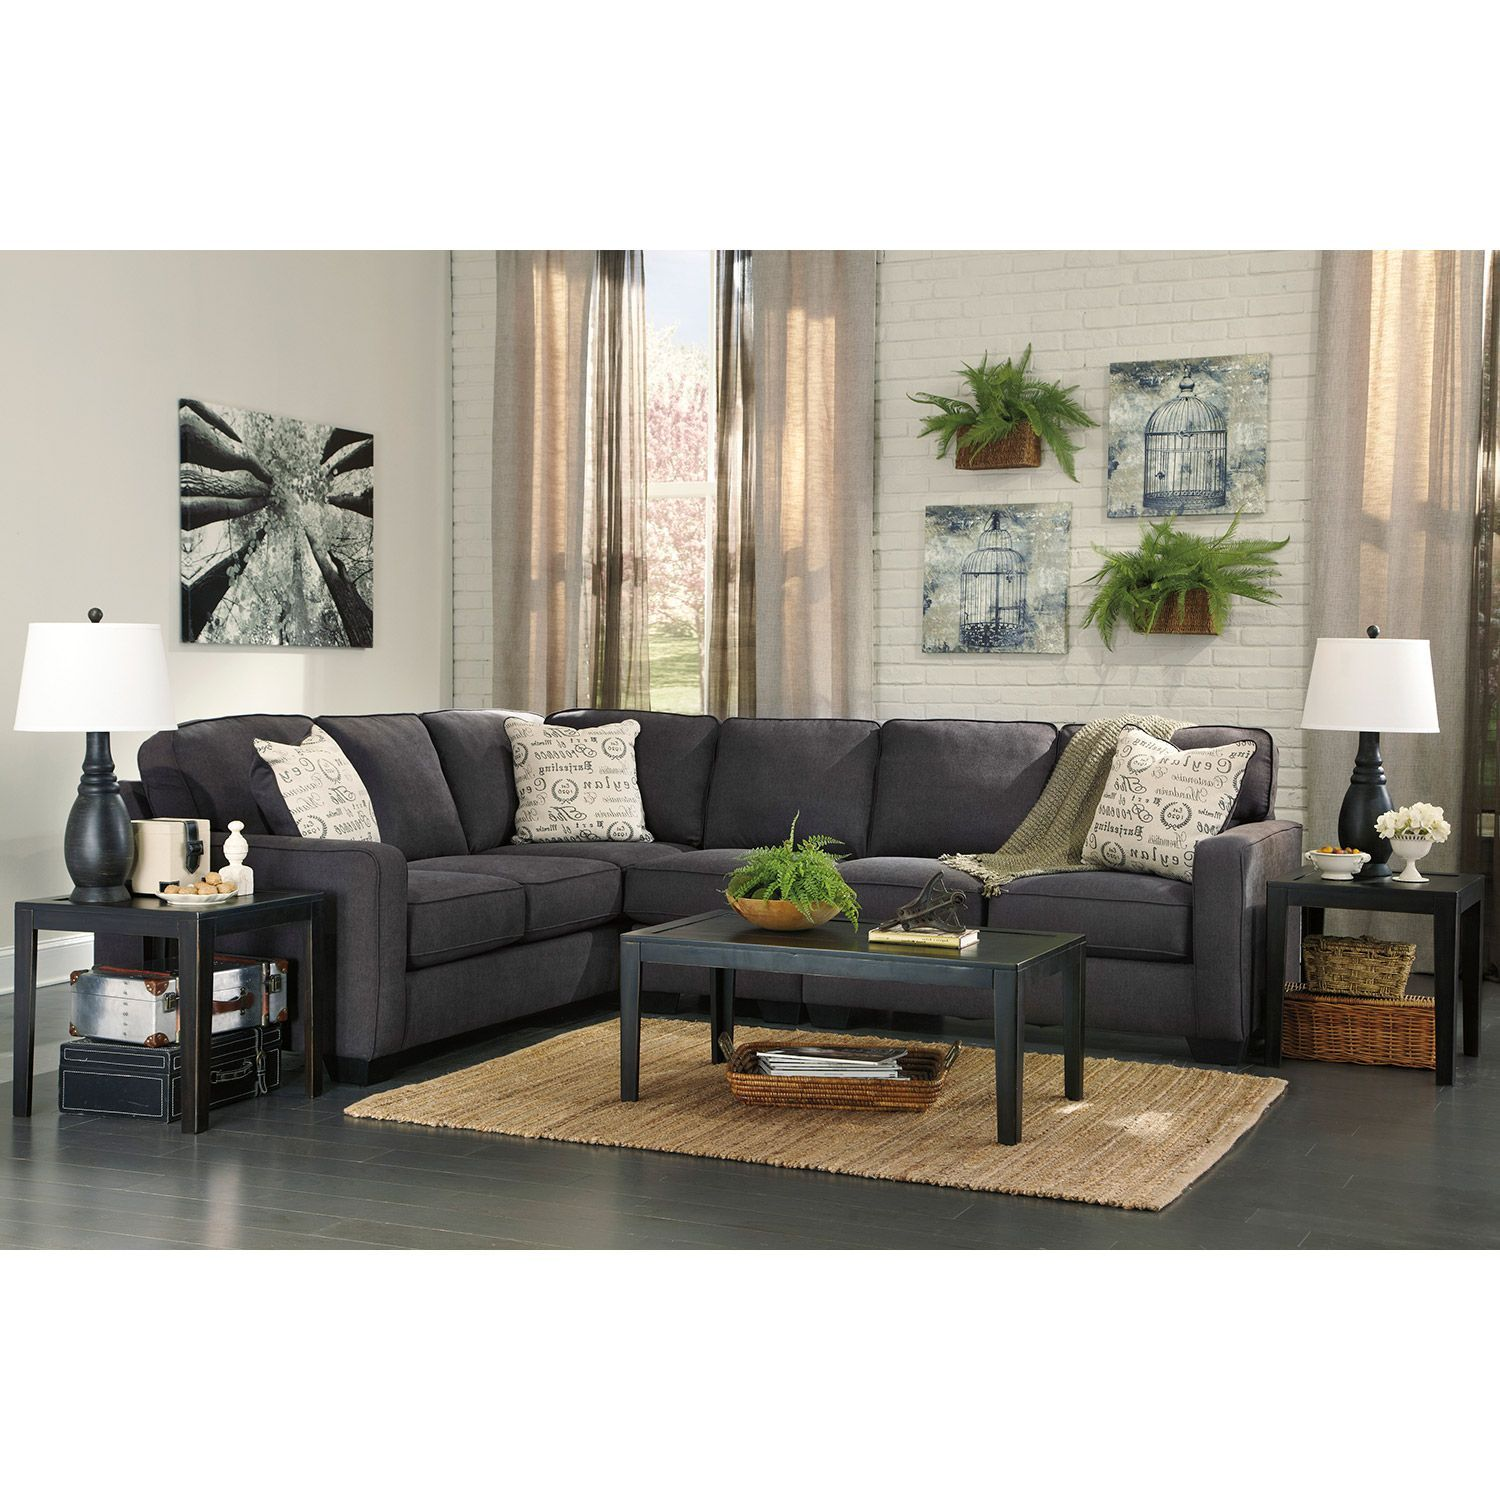 American Signature Furniture Allentown Pennsylvania: 2pc Charcoal Sectional With LAF Sofa